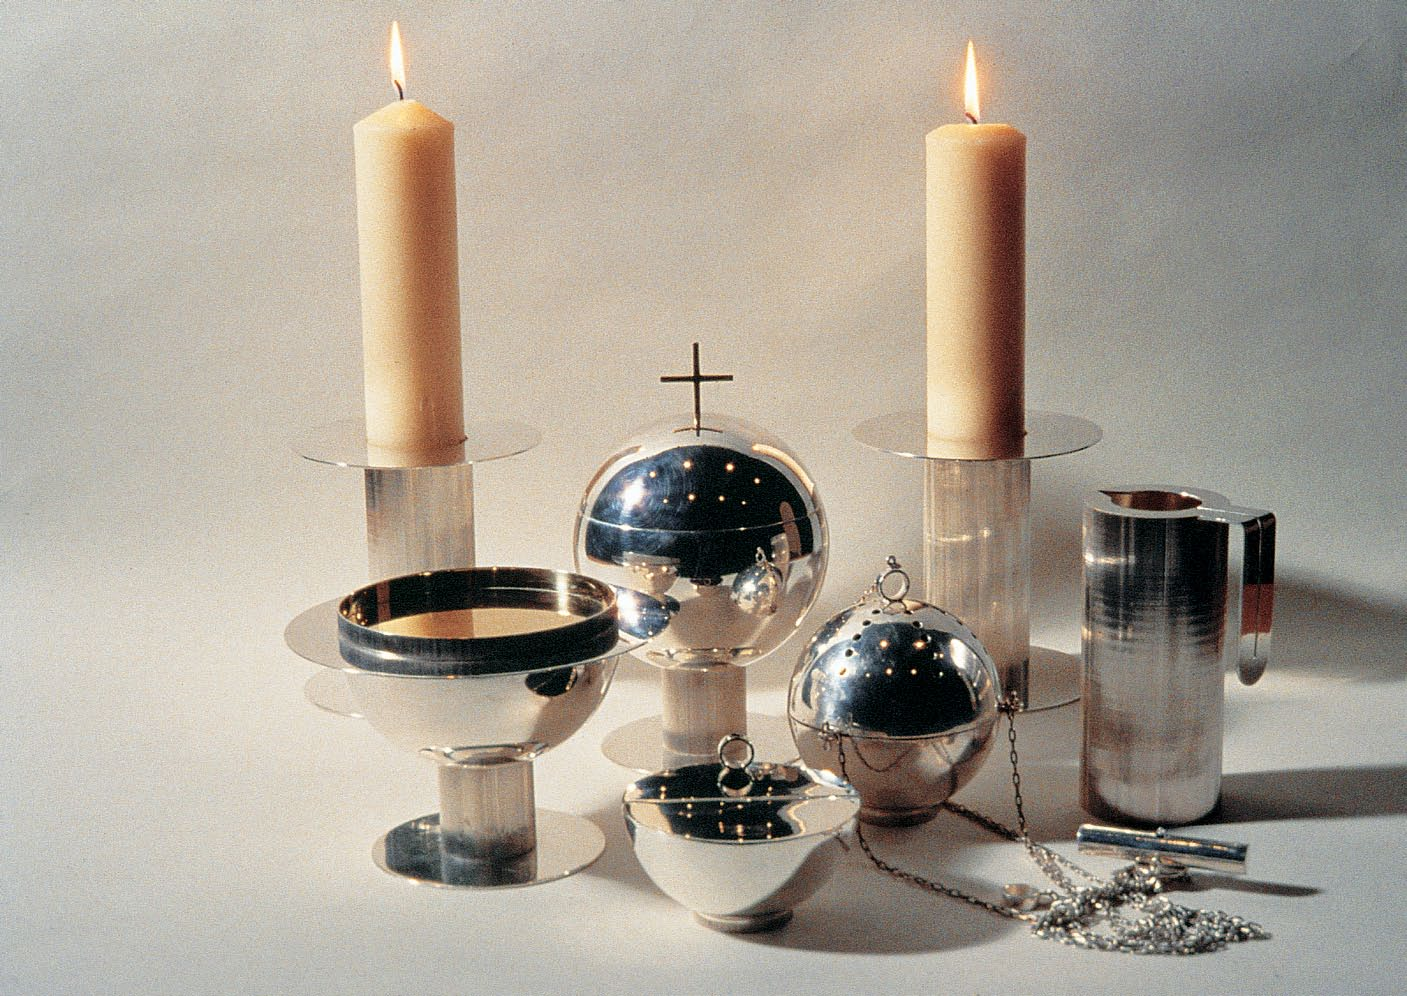 We designed this set of silver pieces as implements for the liturgical service at Saint Peter s Church.